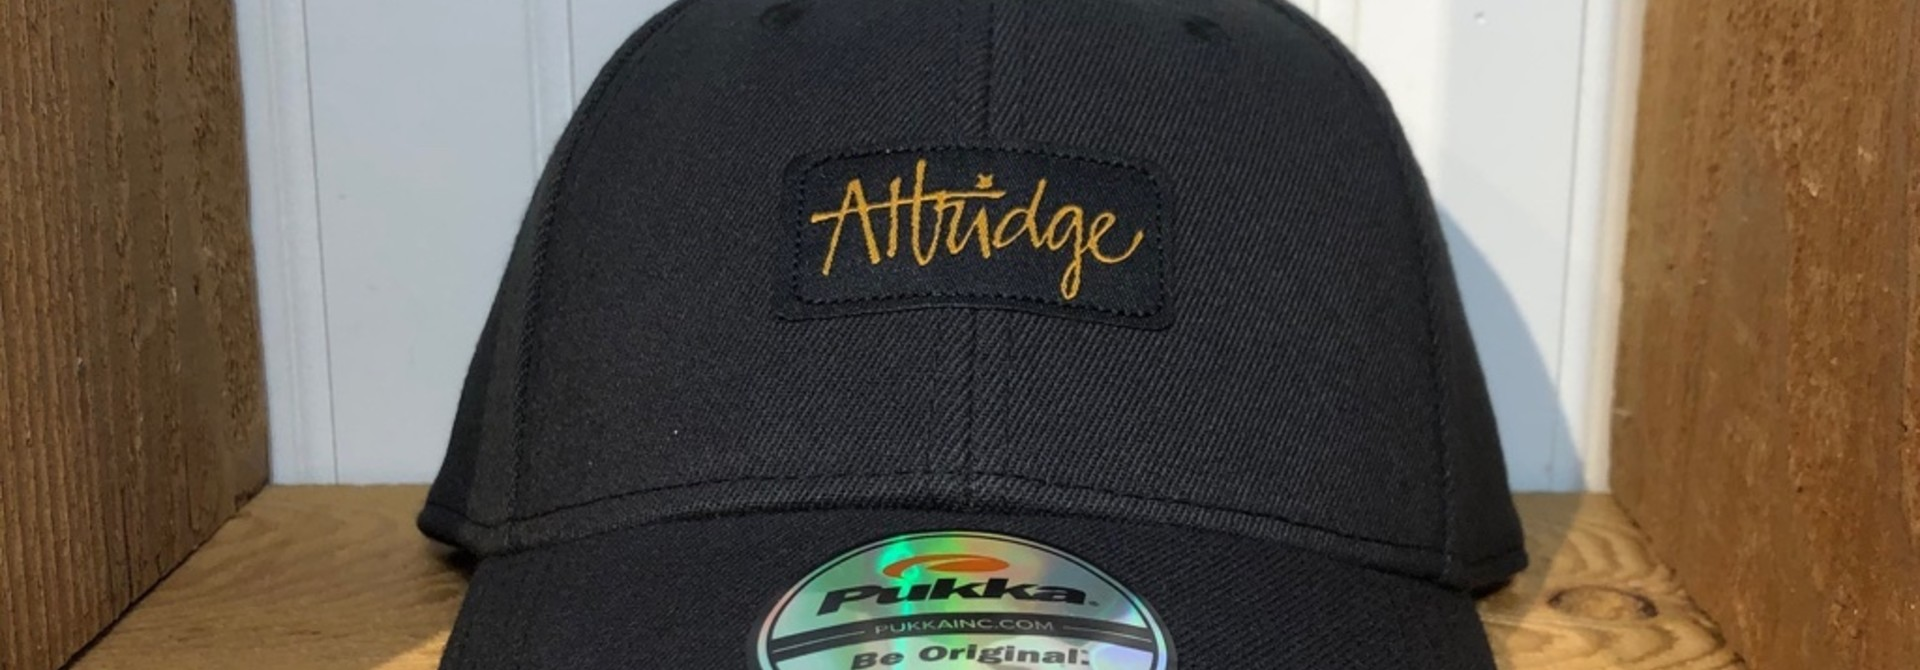 Attridge Script Stretch Fit Hat